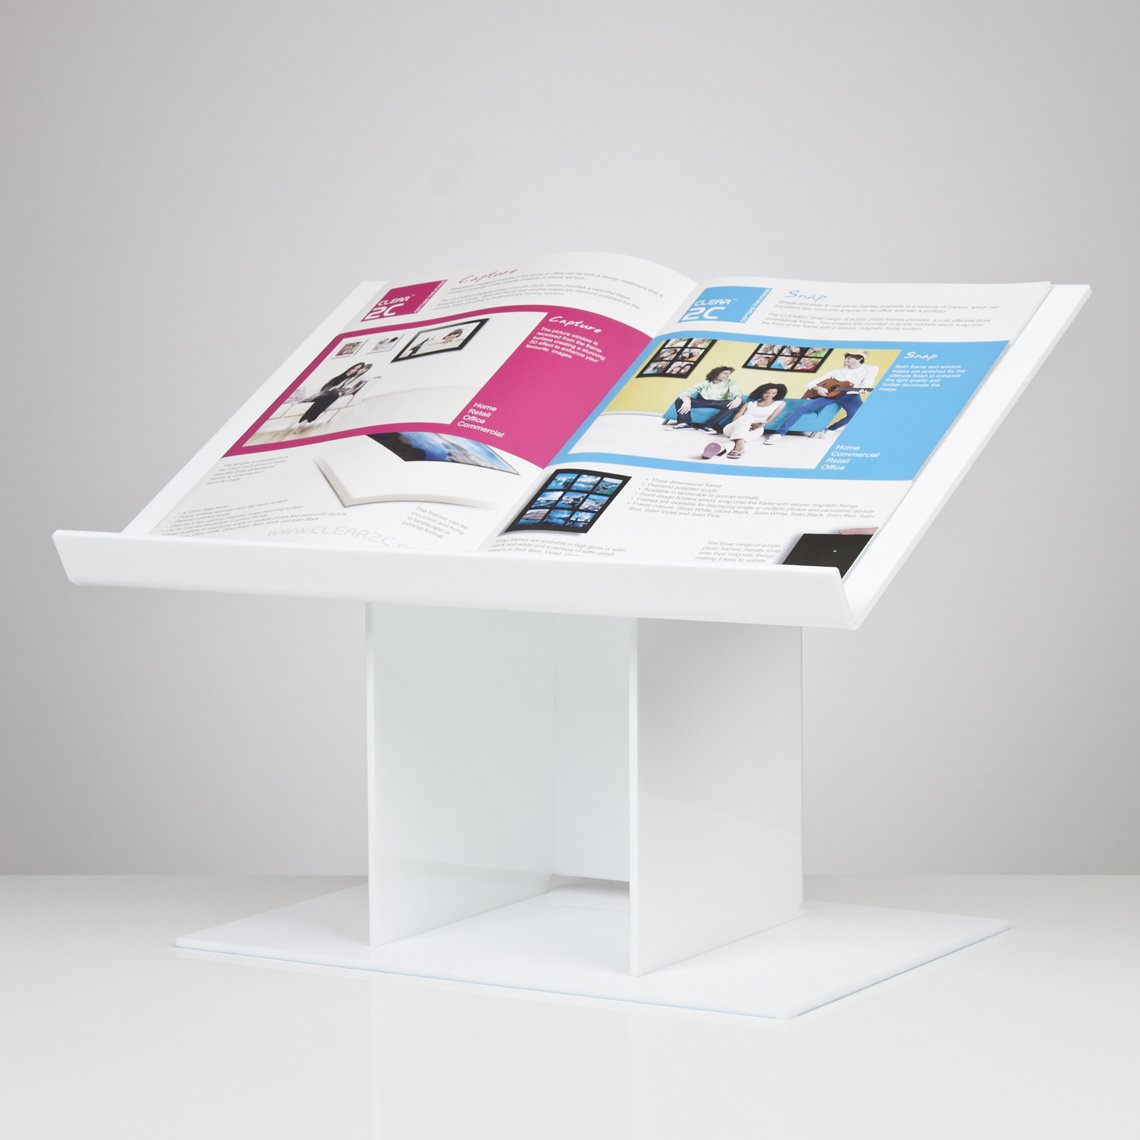 Luminati Desk Top Lectern - White